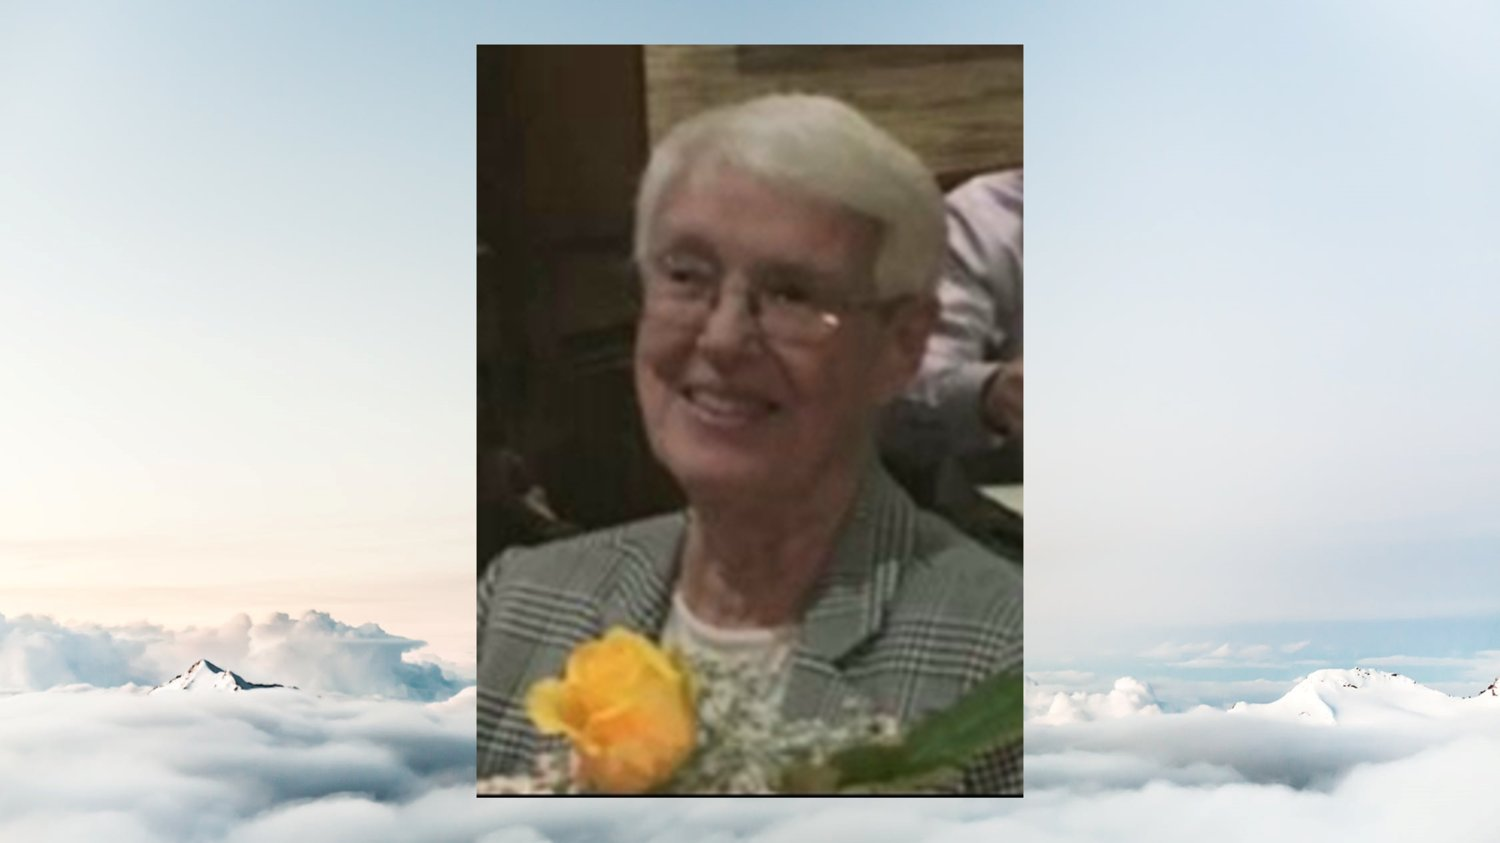 Mary Lucille Weadock Waldrop of Pattison passed away in early April at the age of 87. Mary is survived by an identical twin and a host of other loving family members. Her family fondly remembers her love of cooking for her loved ones.